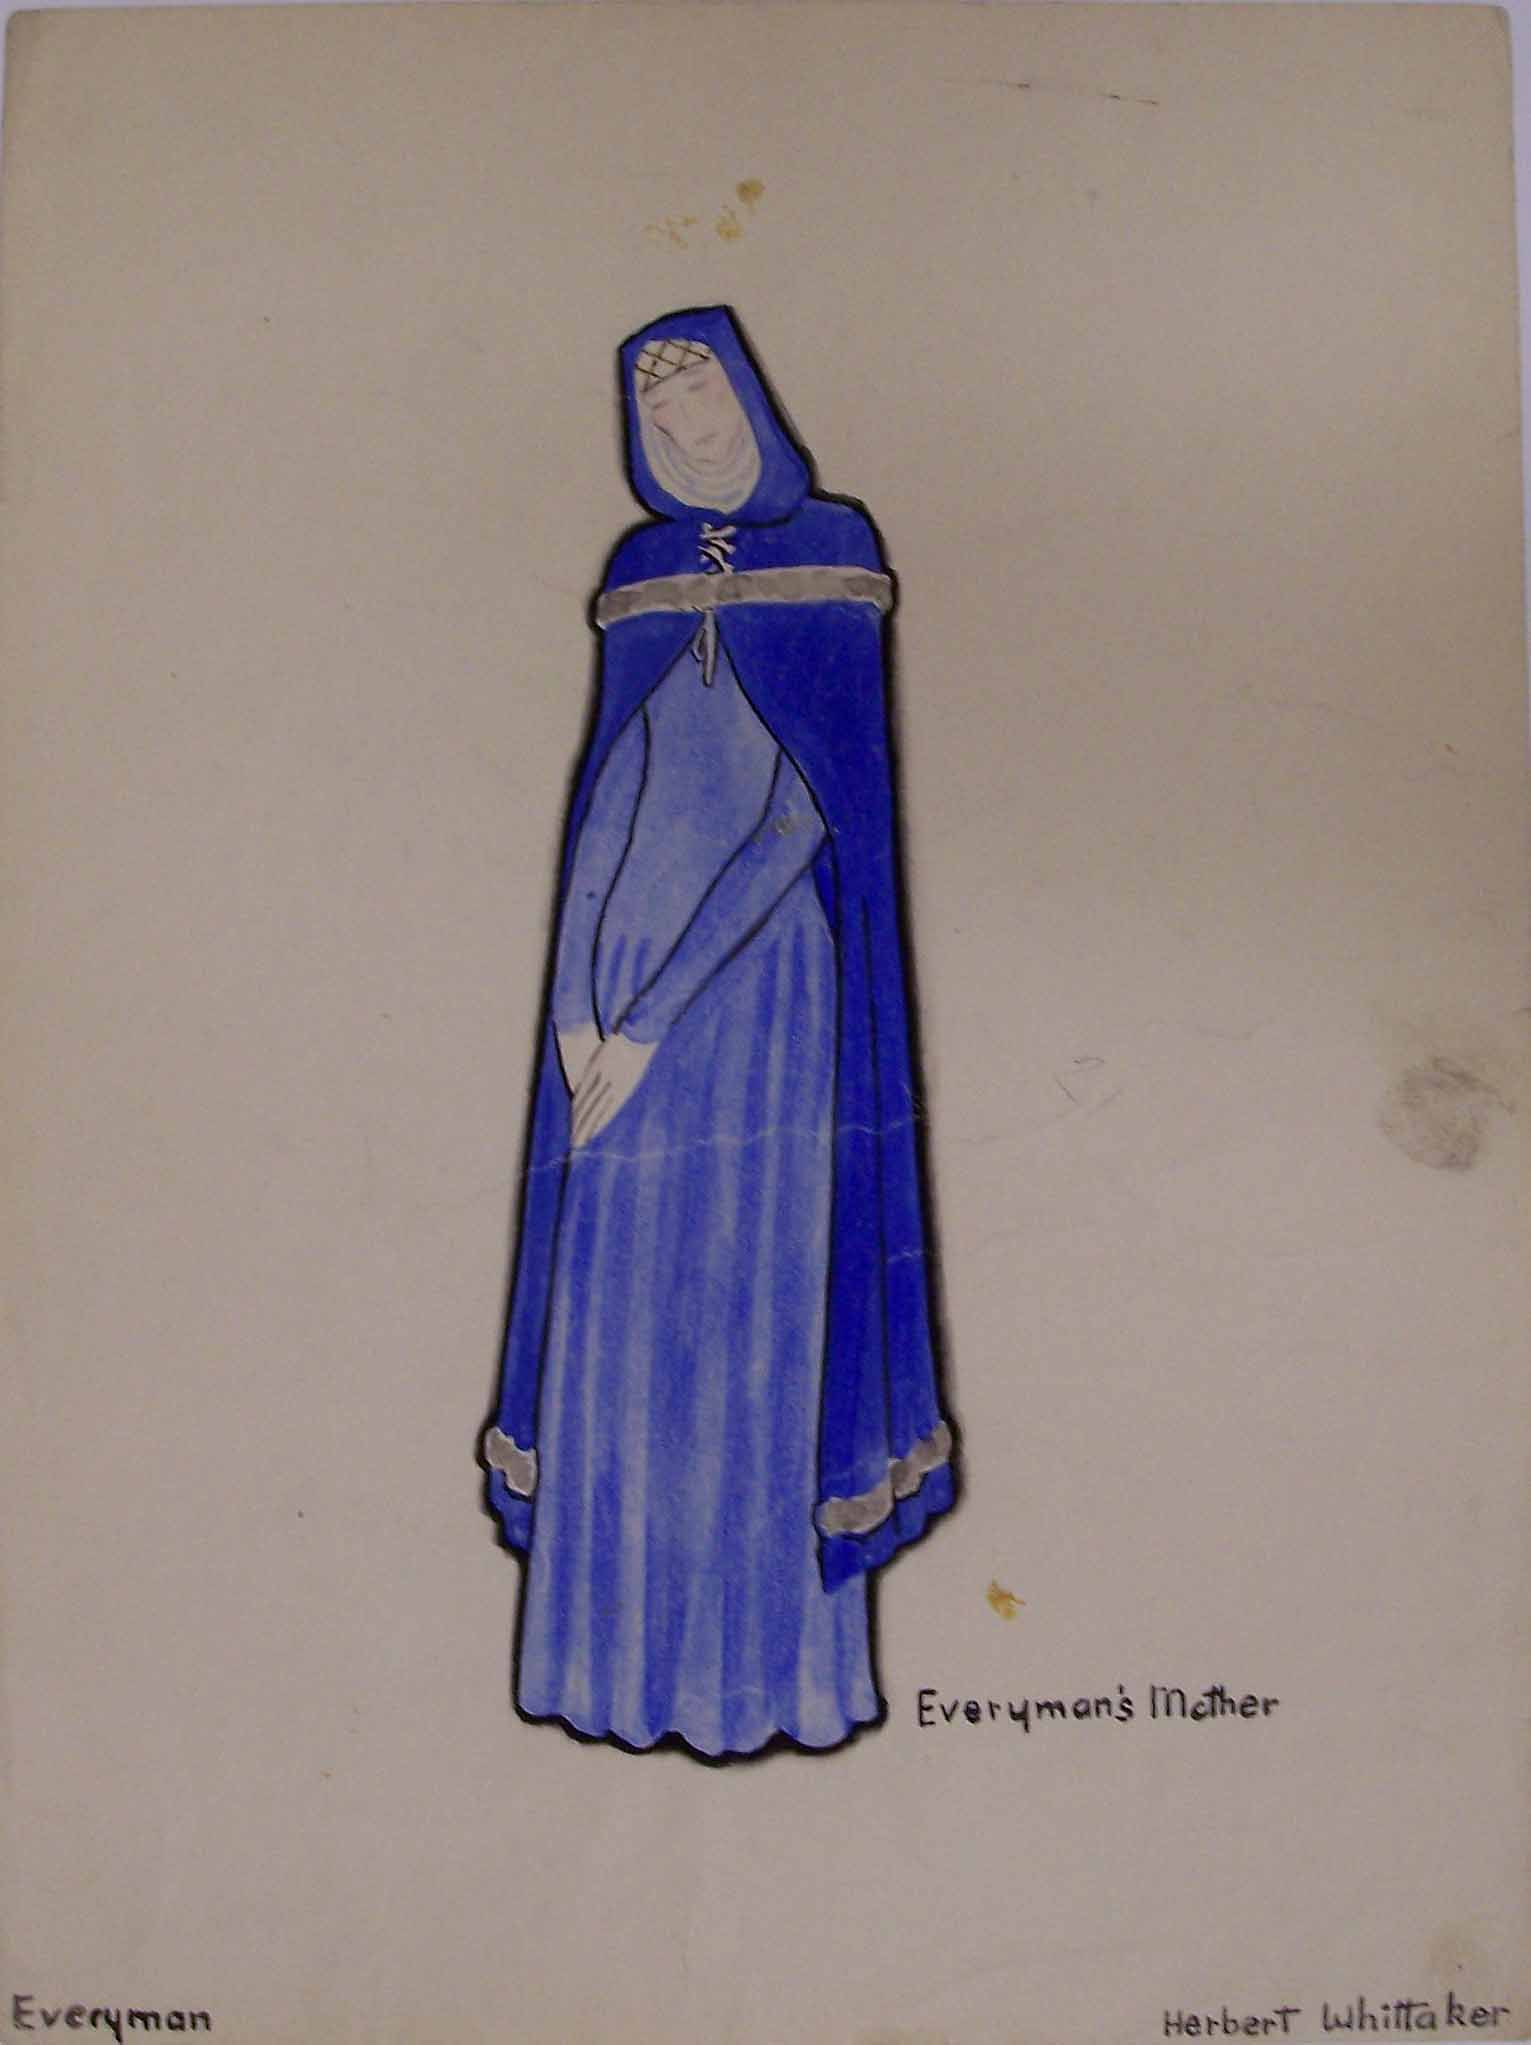 Whittaker costume design for Everyman